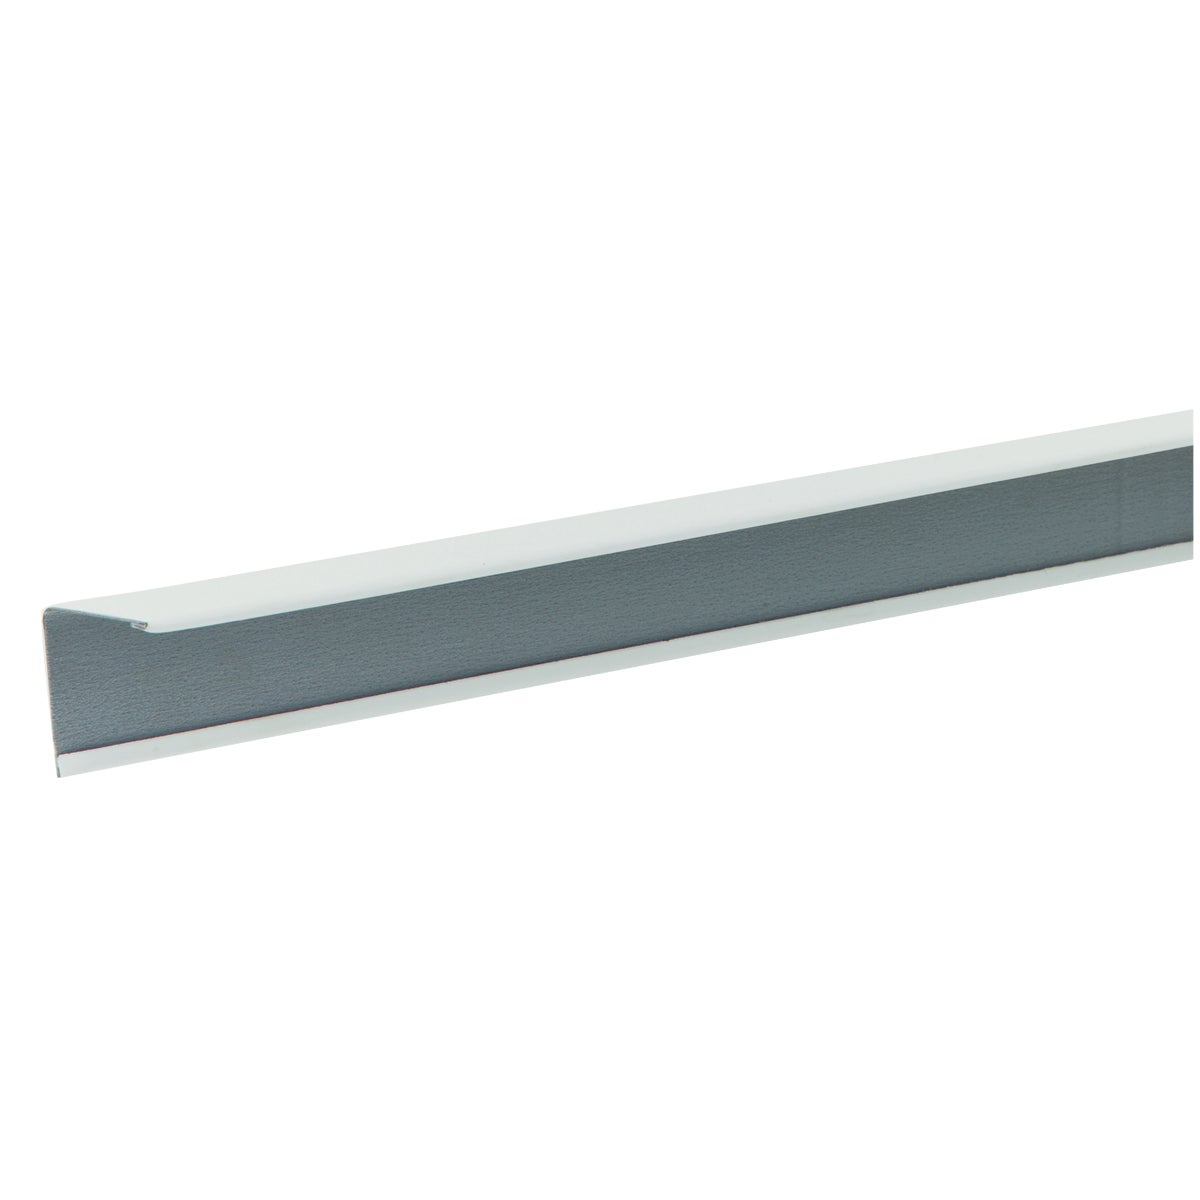 12' FR WALL MOLDING - SM7-050 by U S G Interiors Grid